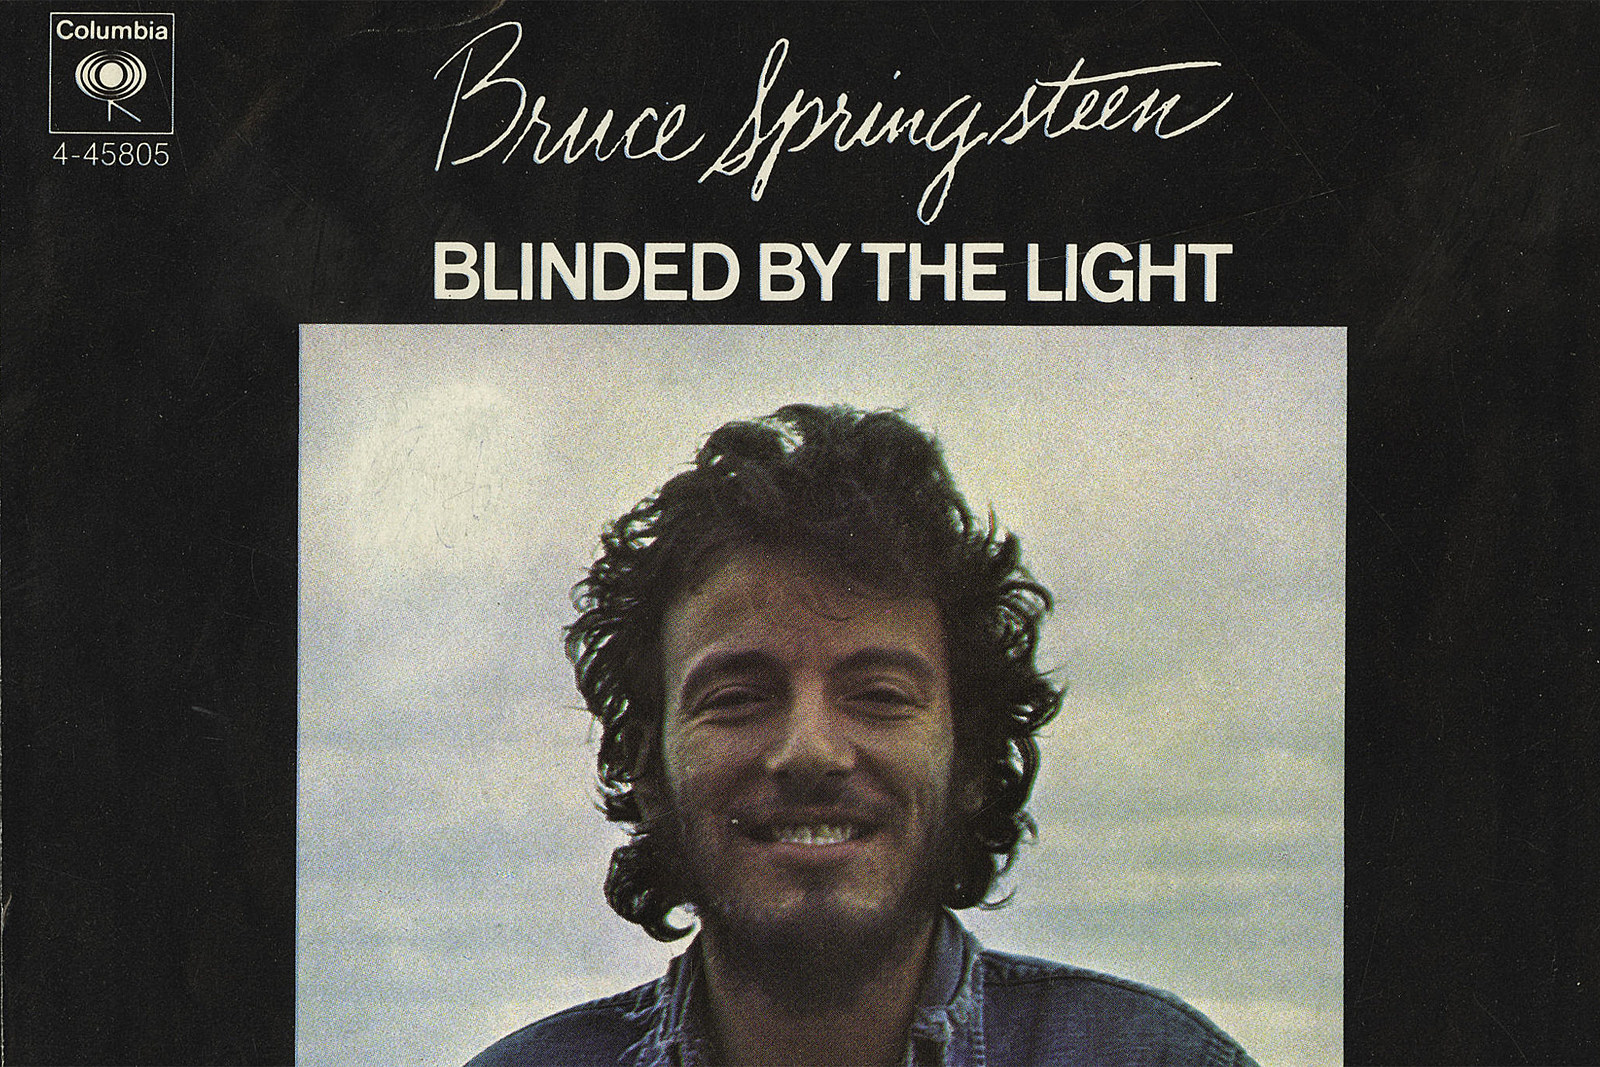 How Bruce Springsteen Came of Age on 'Blinded by the Light'